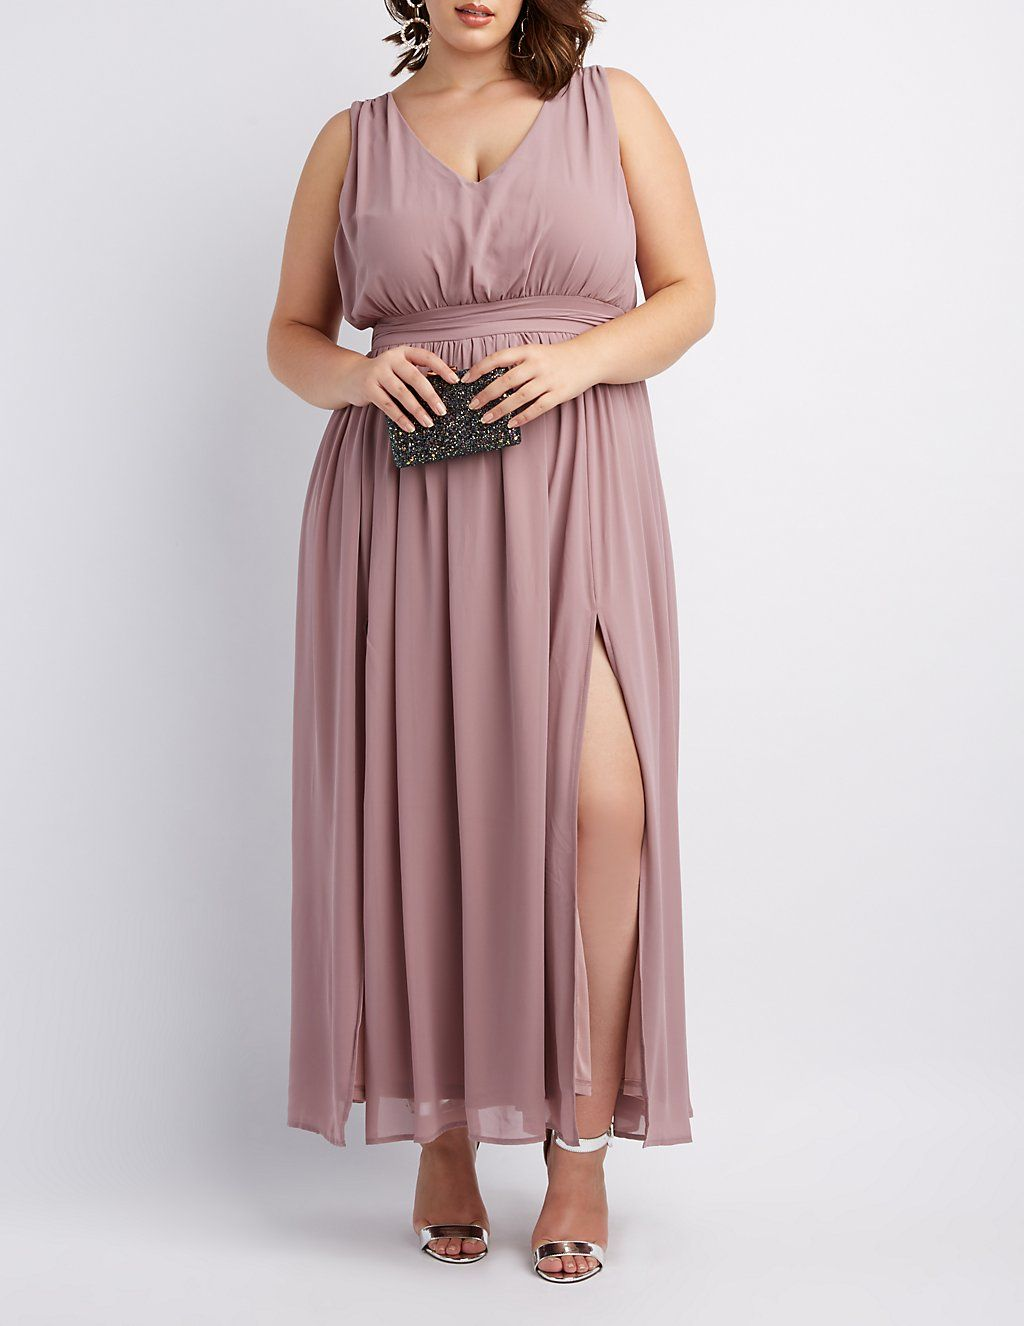 2019 year lifestyle- How to maxi wear pleated chiffon skirt